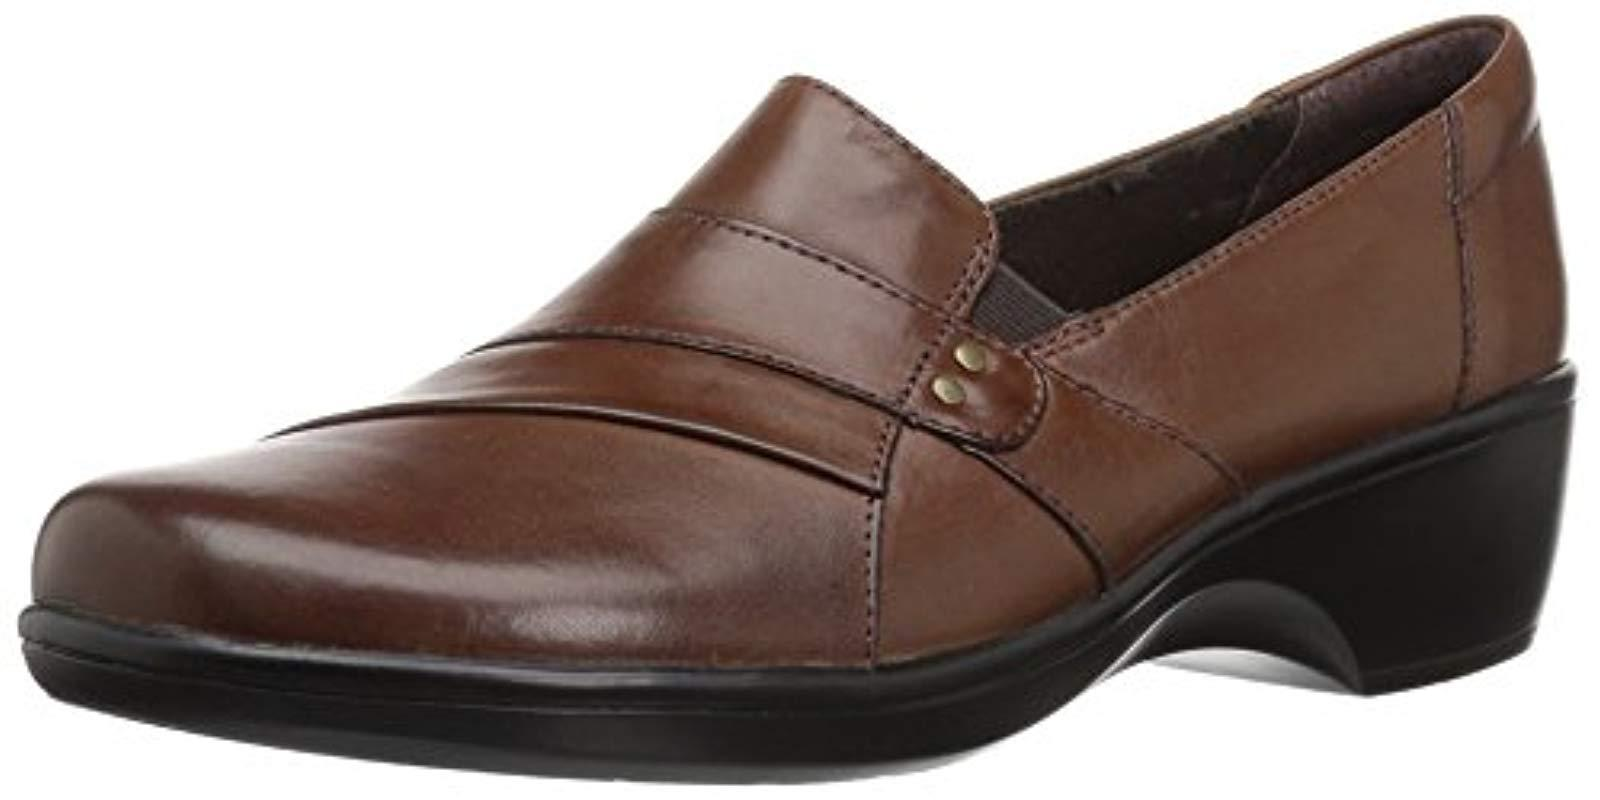 May Marigold Slip-on Loafer Brown